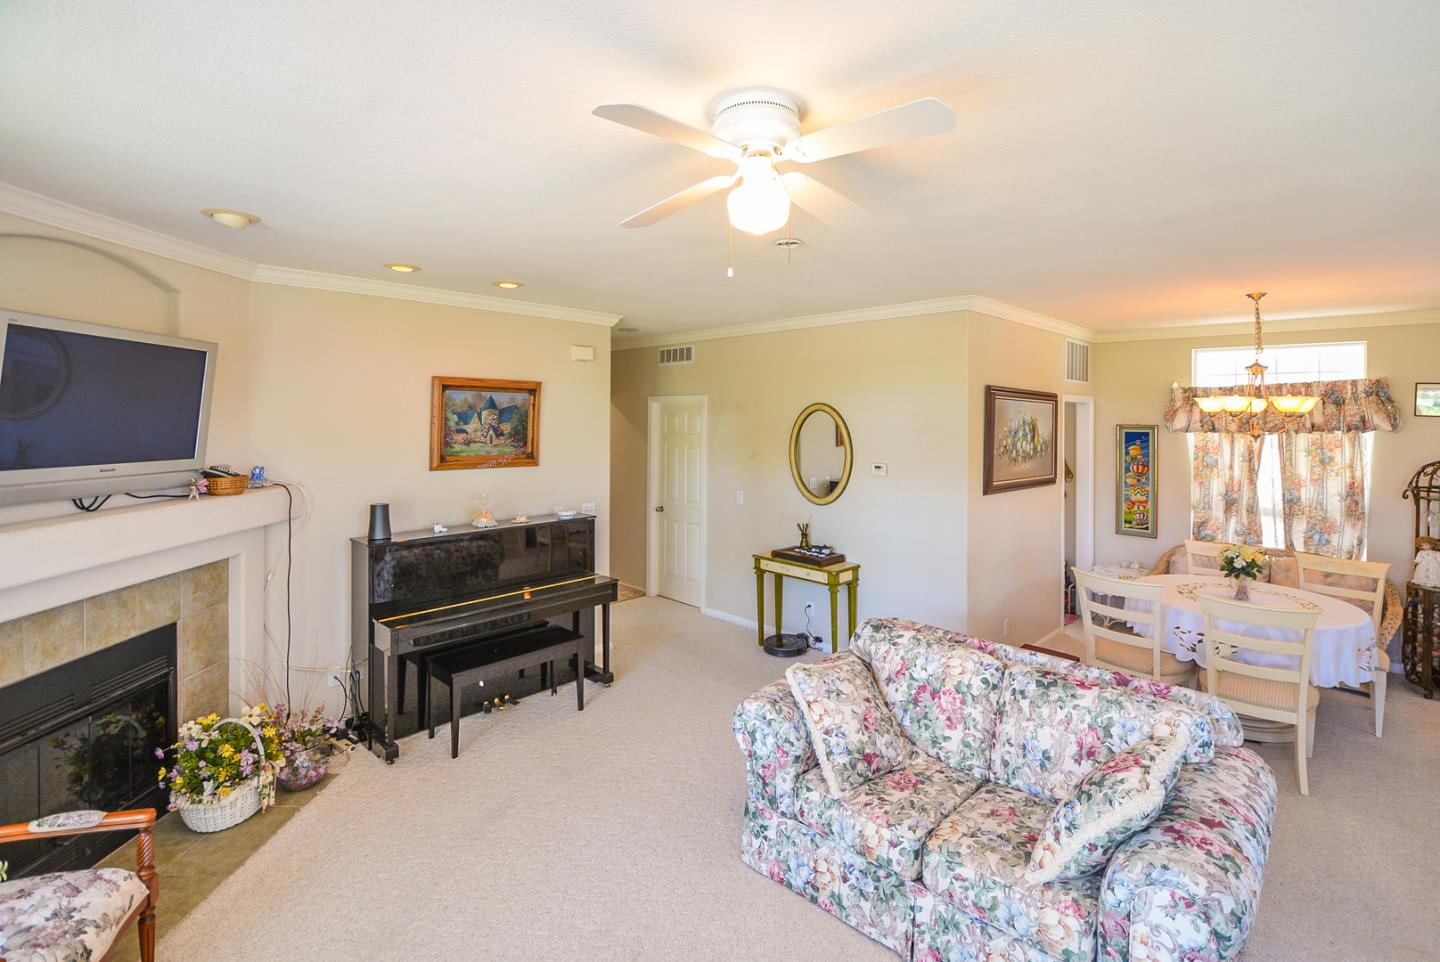 Additional photo for property listing at 1220 Tasman Drive  Sunnyvale, California 94089 United States